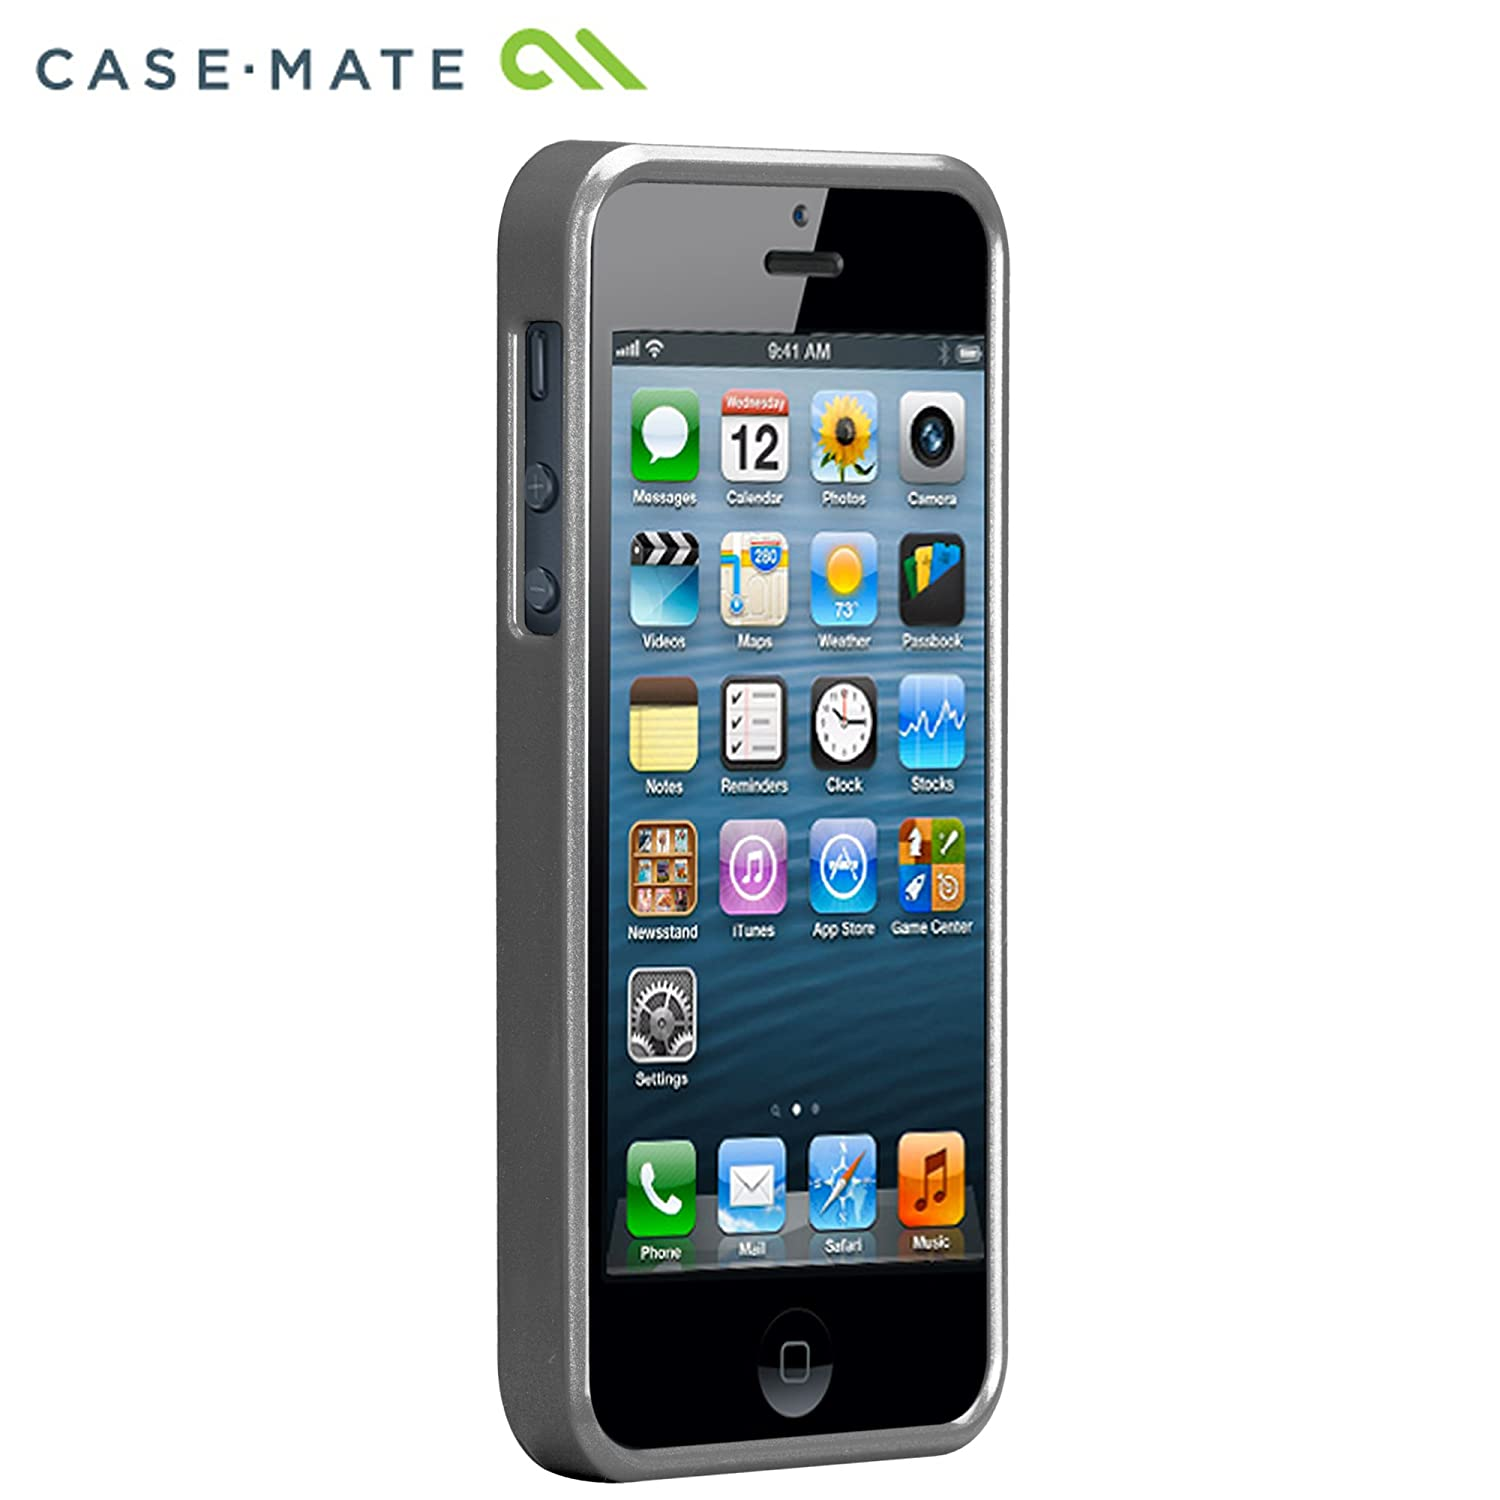 Case mate iphone coupons